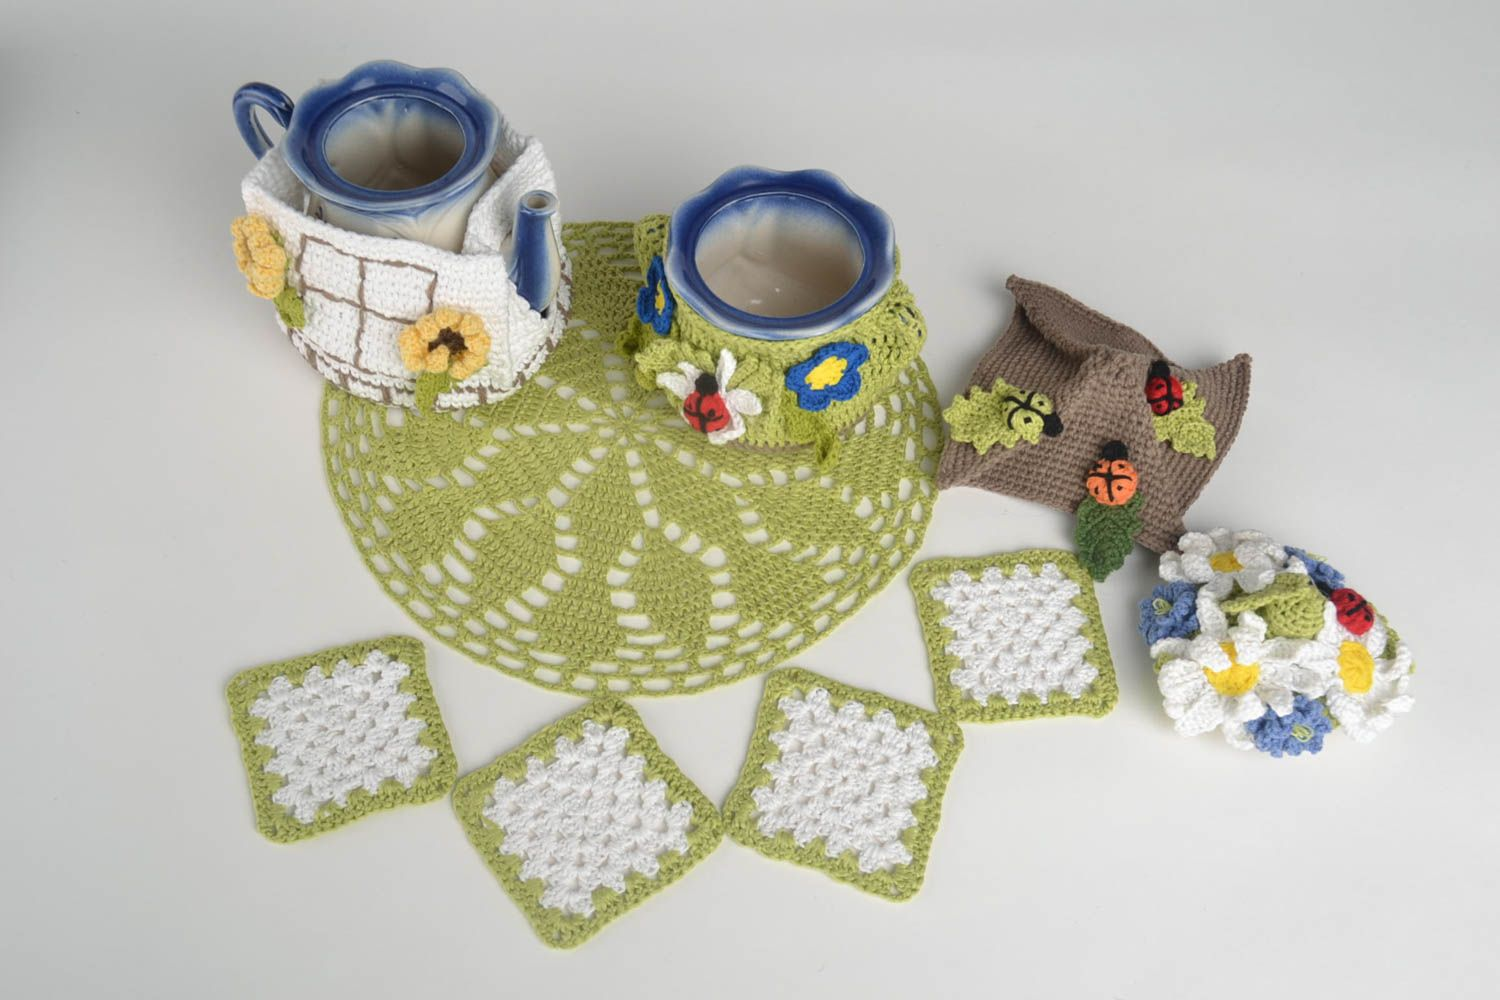 tea pots and coffee pots Gift set handmade teapot cozy 4 crochet coasters hot pads crochet napkin  - MADEheart.com